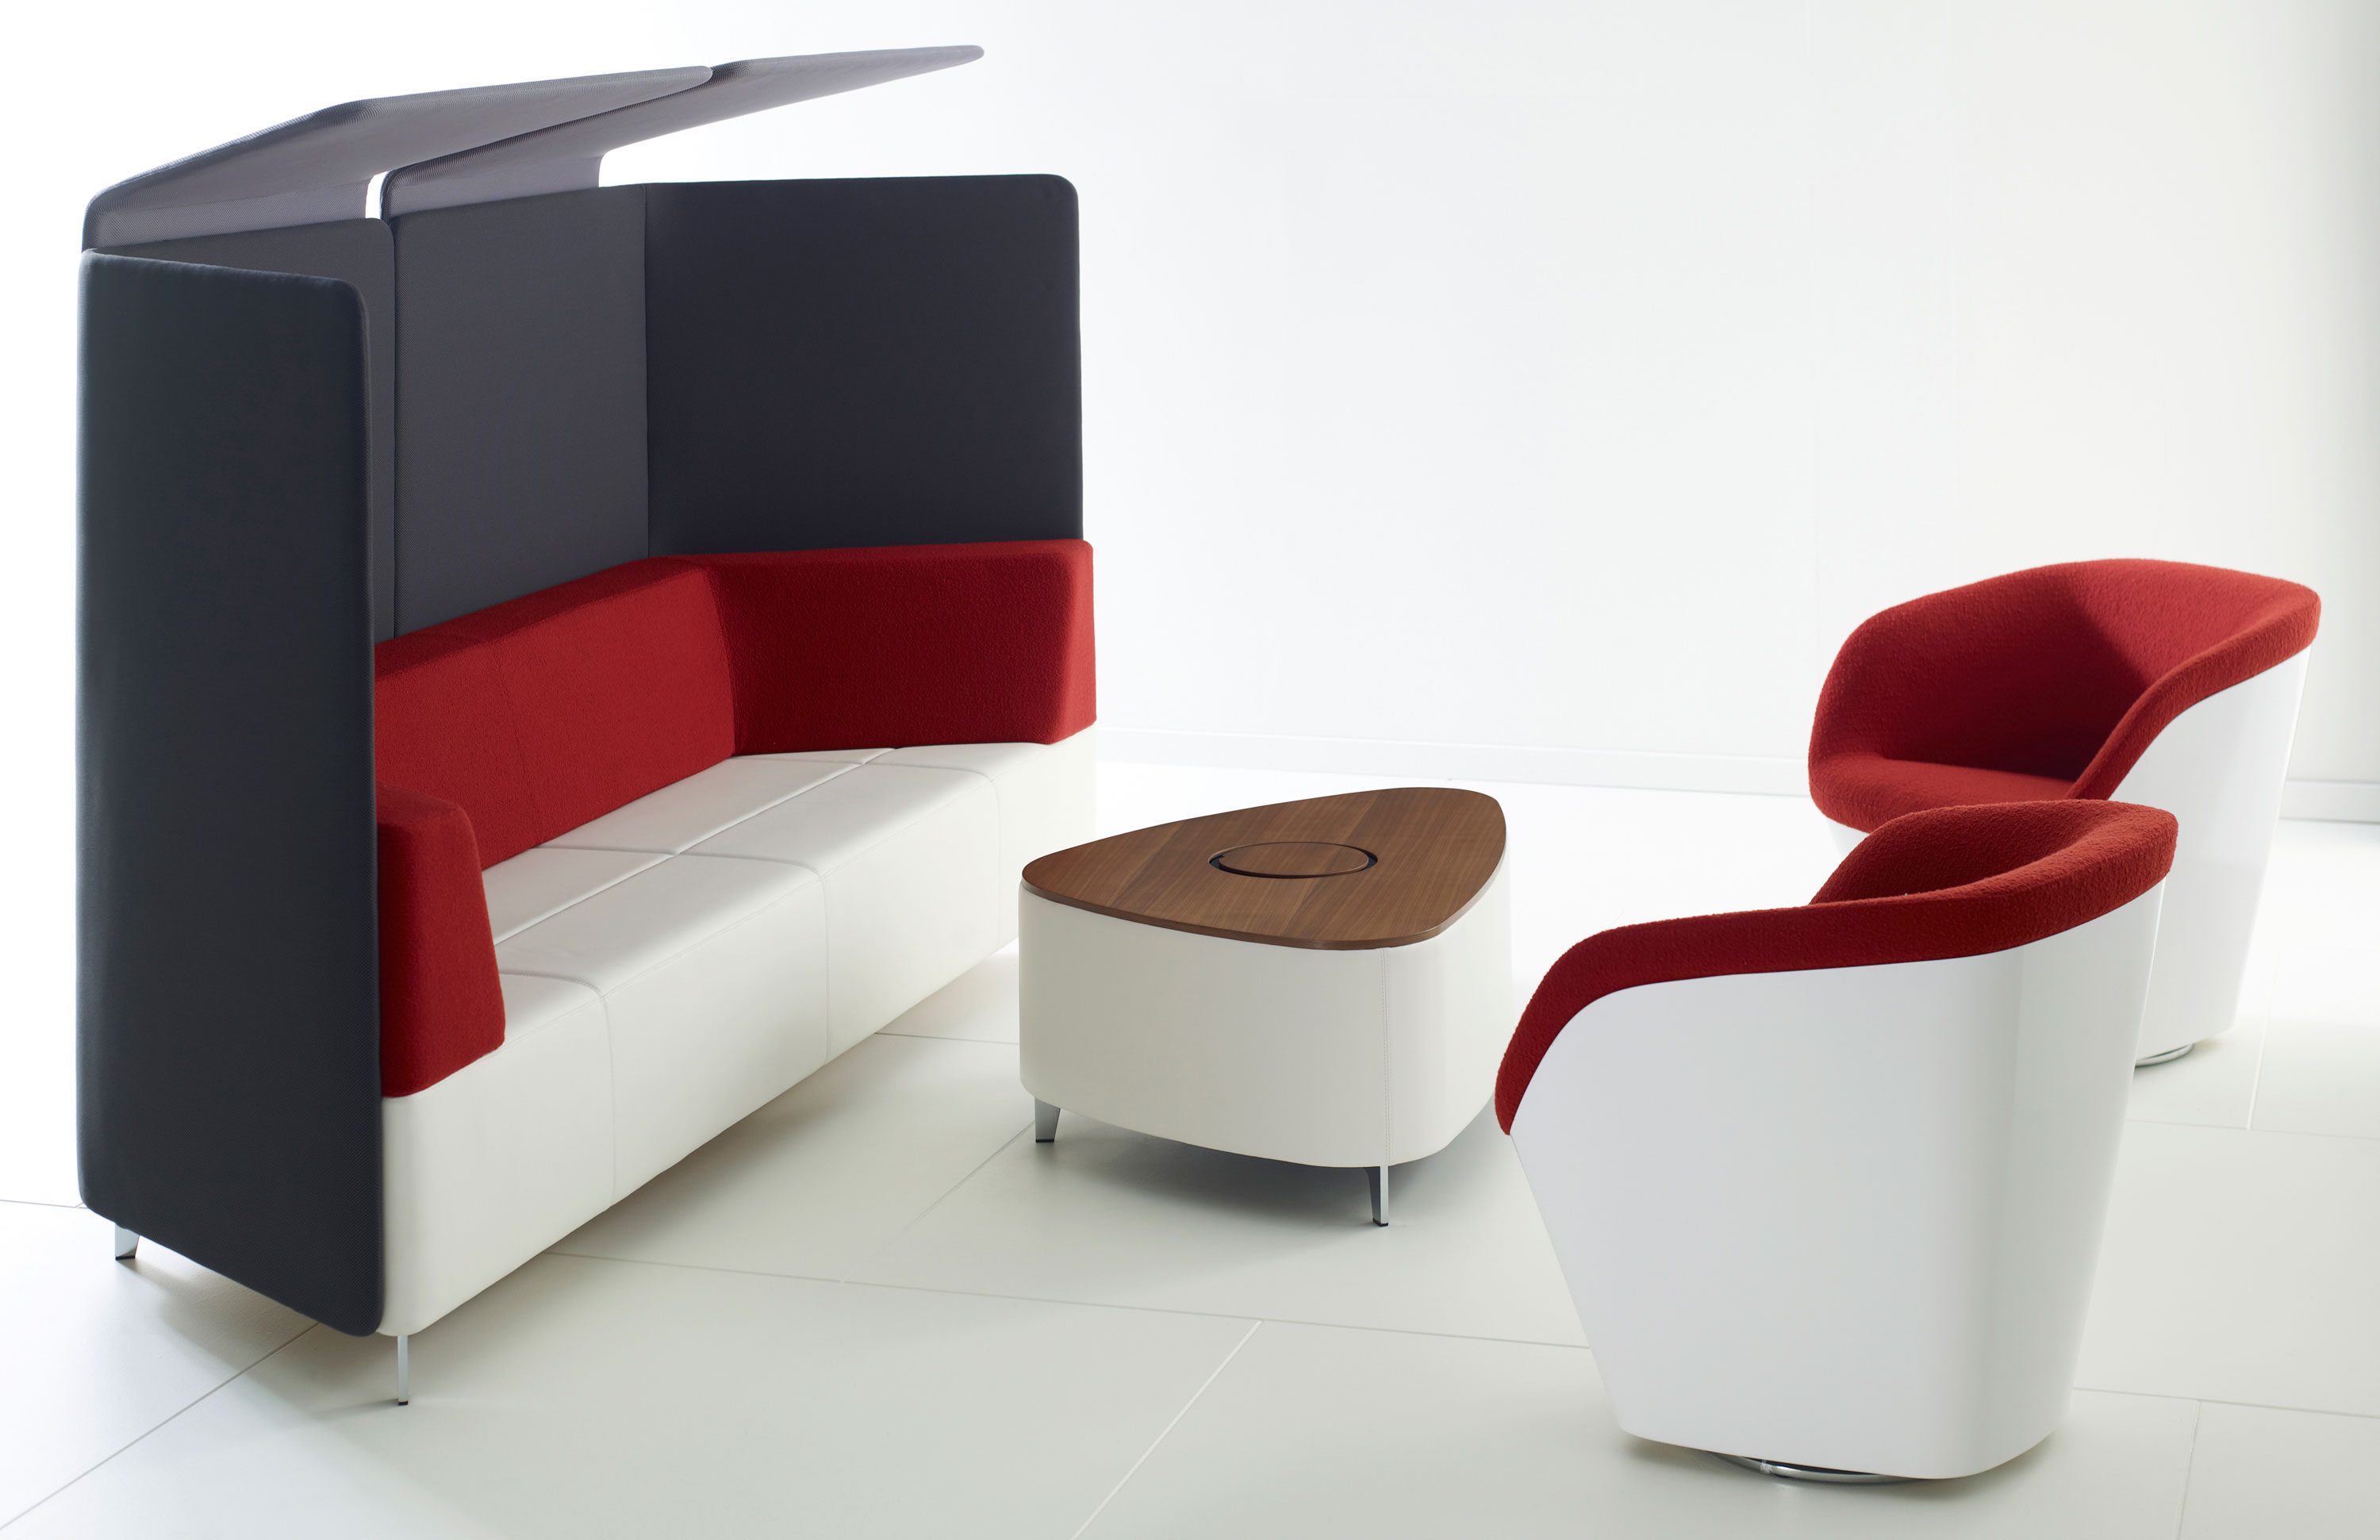 Acoustic furniture more privacy less noise modern for Contemporary office furniture